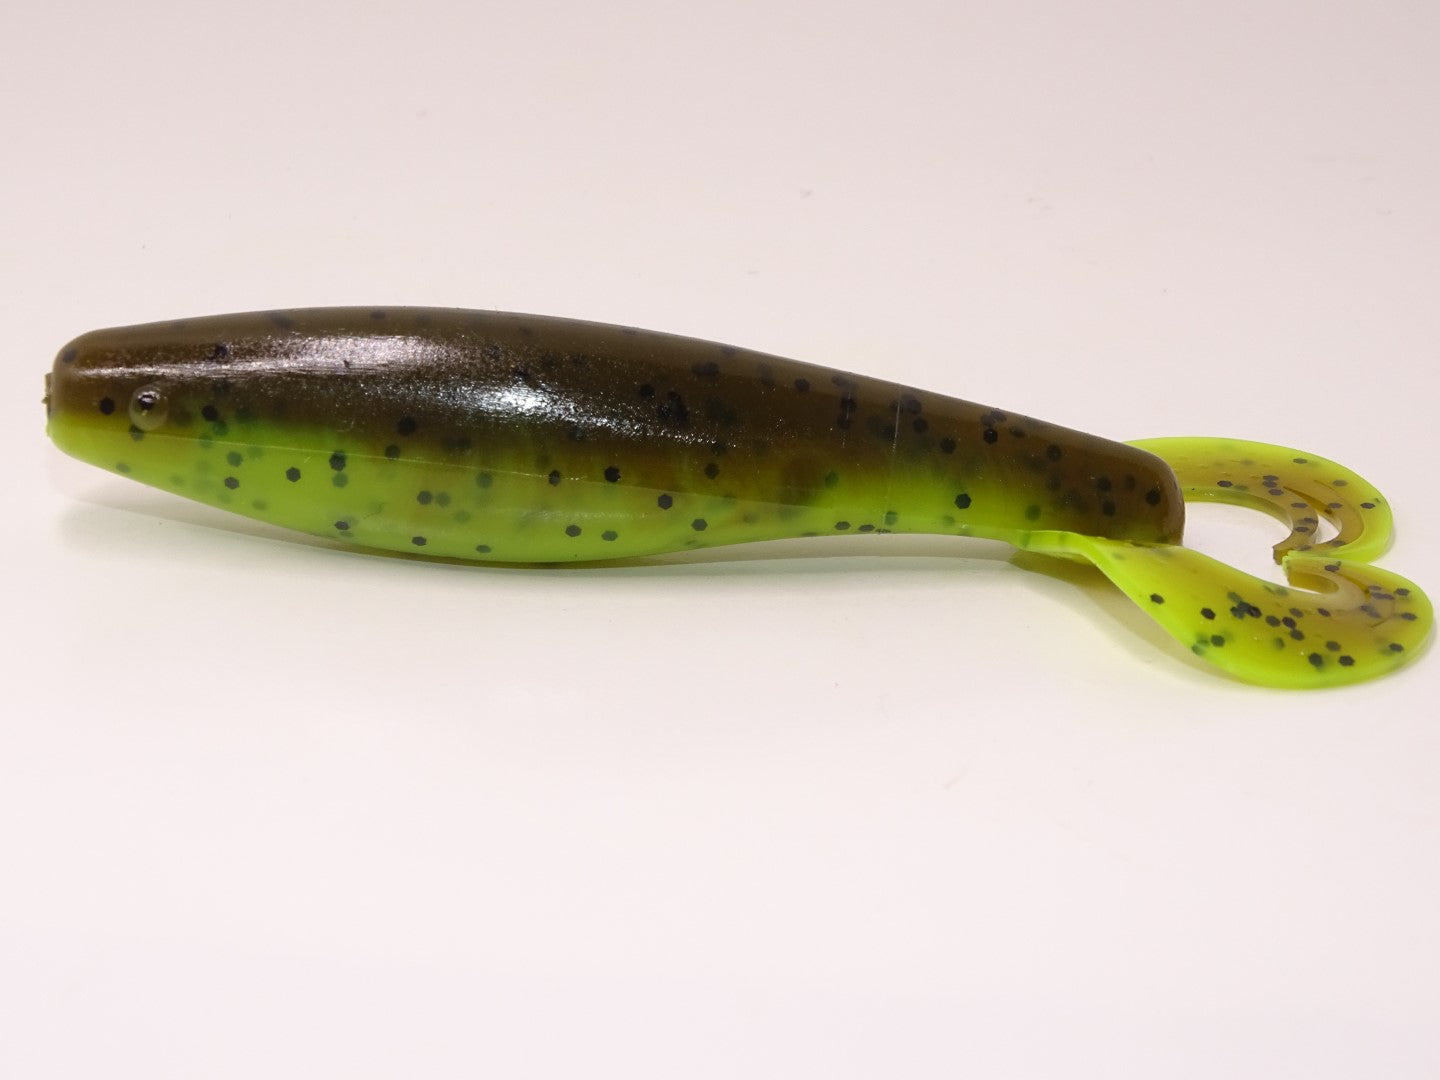 NEW!!! Psycho Chicken Shad, Jalapeno Pollo, 3.5 inches, qty 6